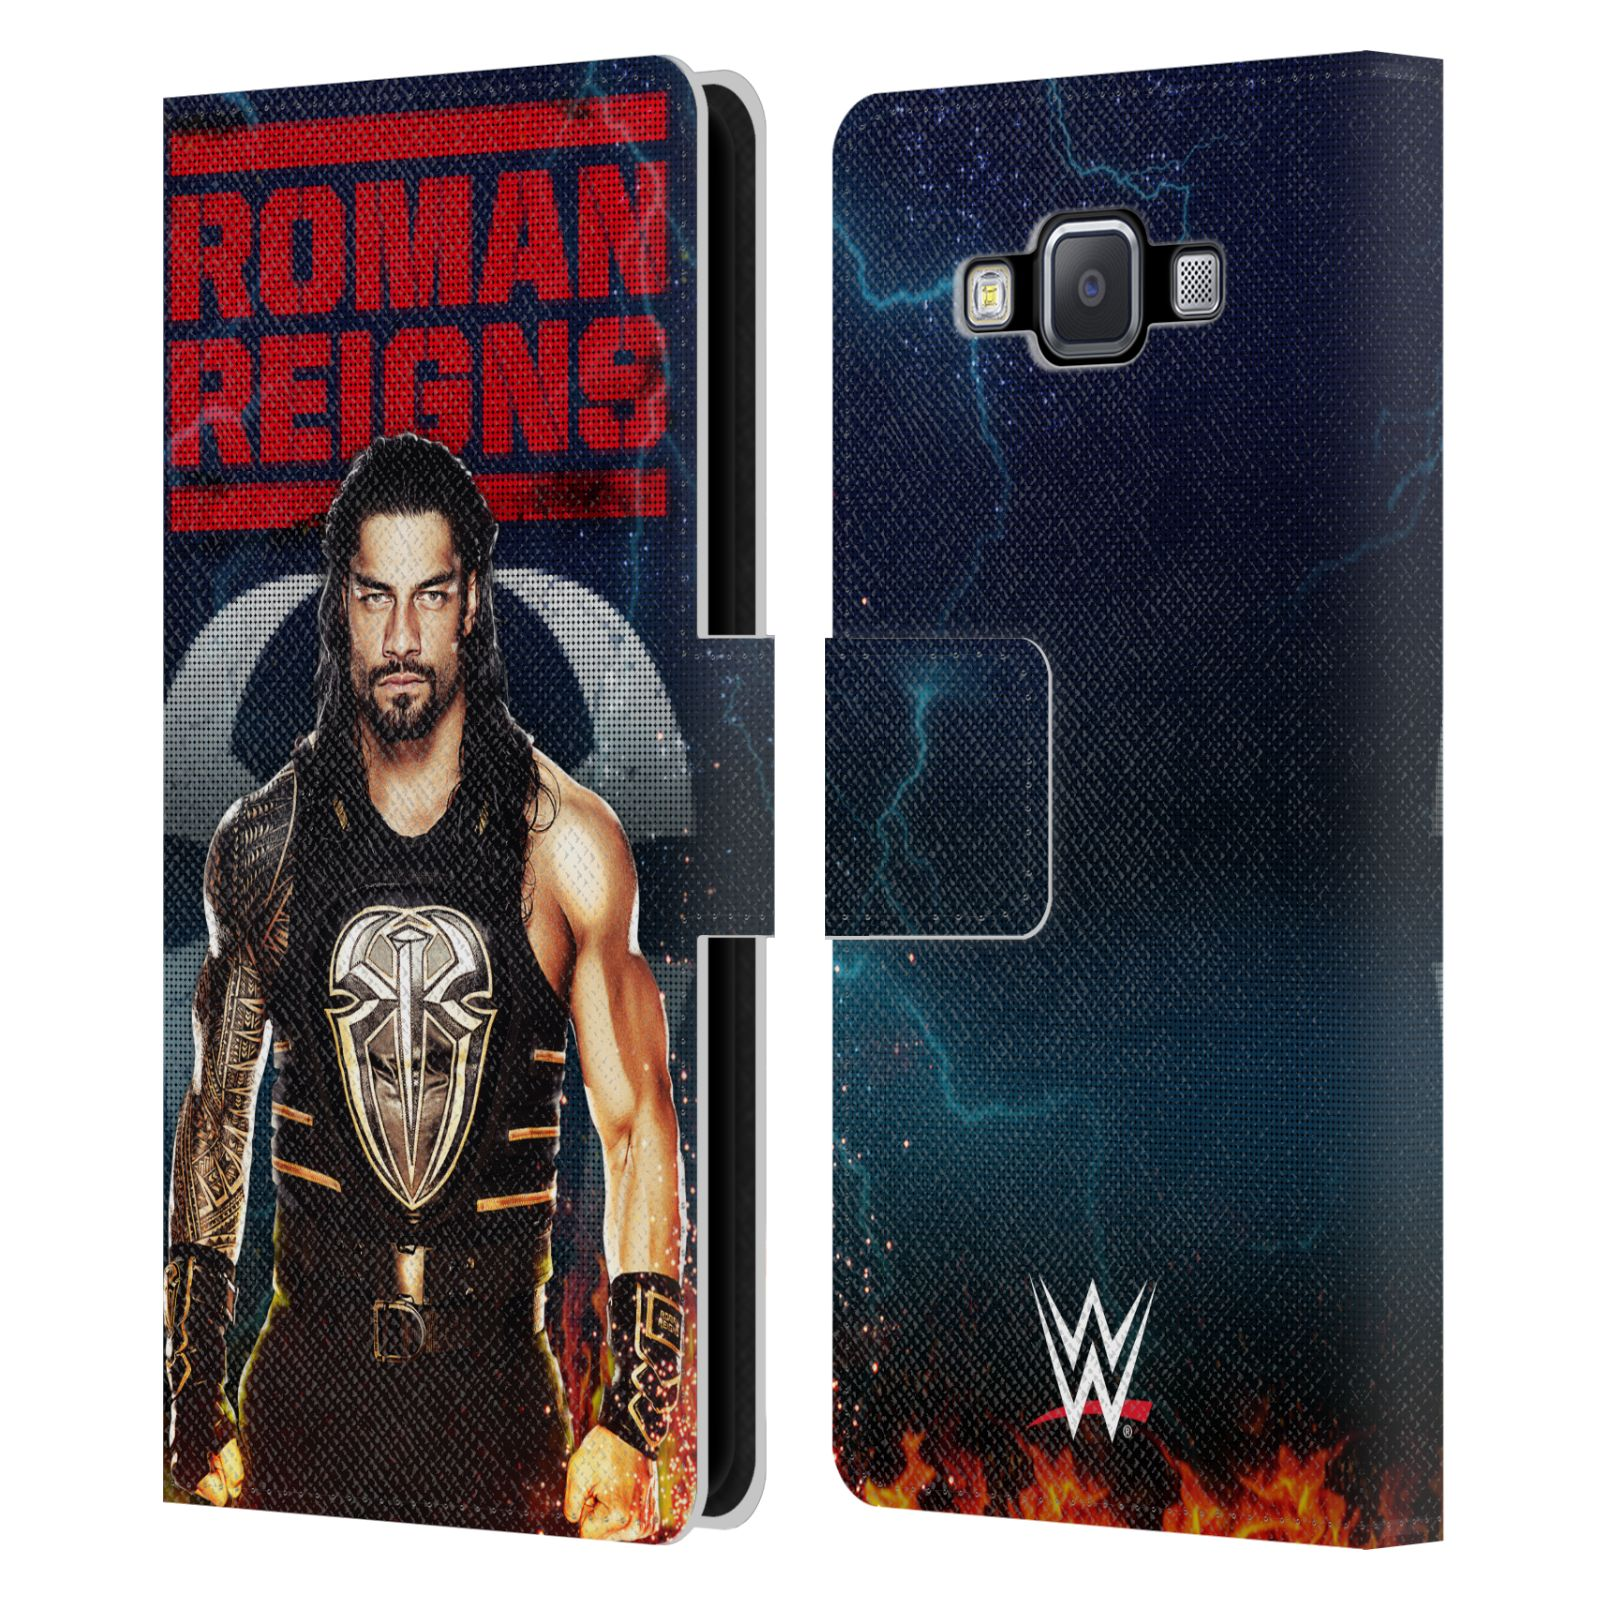 OFFICIAL-WWE-2017-ROMAN-REIGNS-LEATHER-BOOK-WALLET-CASE-FOR-SAMSUNG-PHONES-2